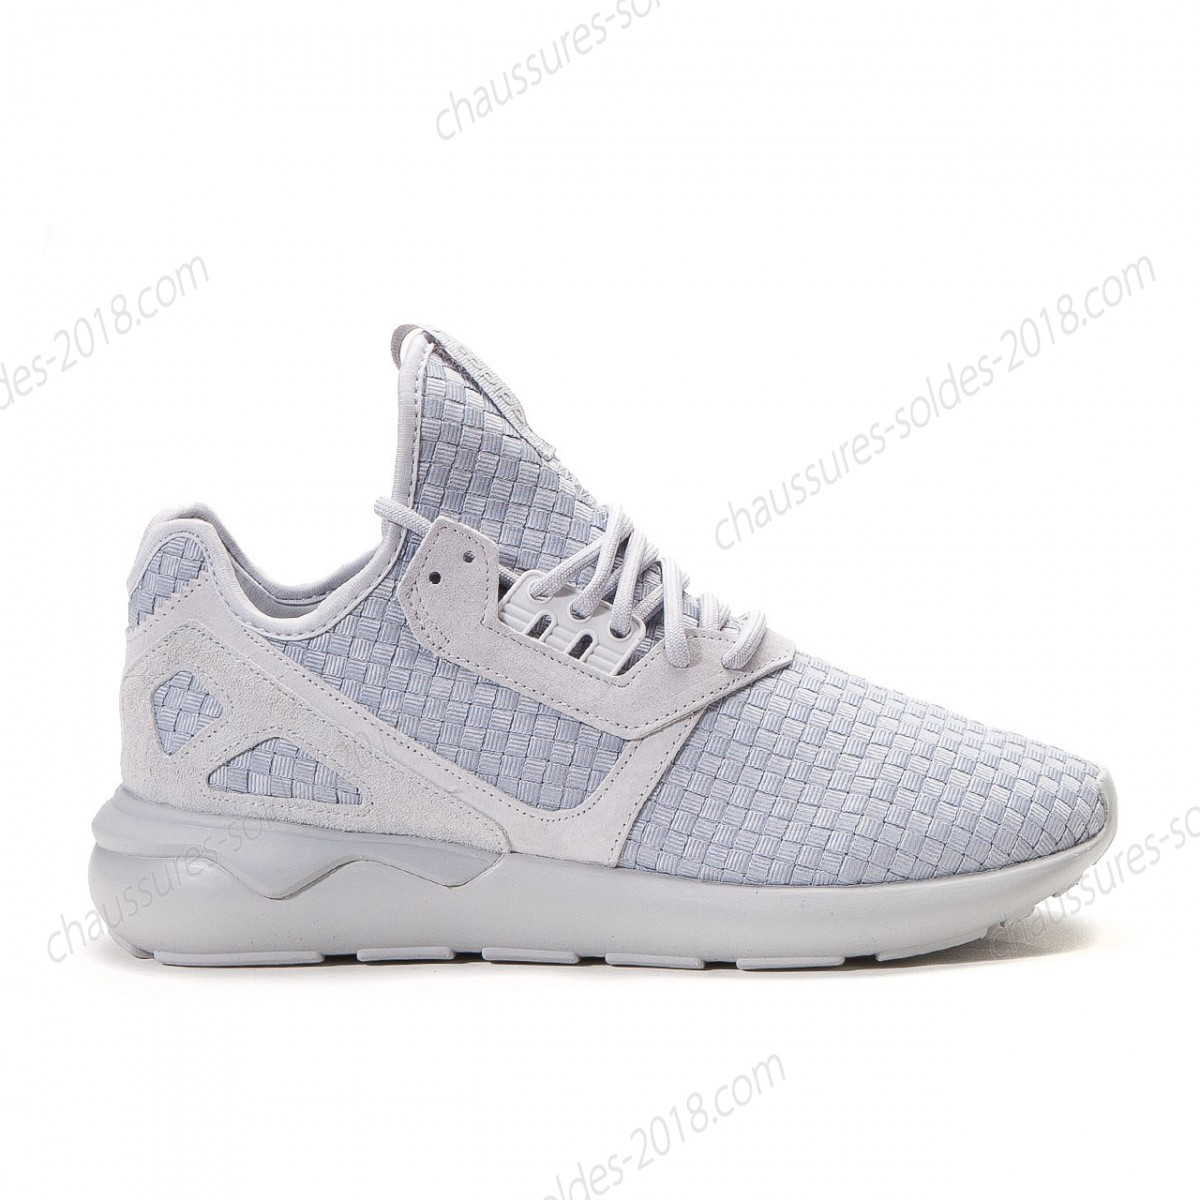 En Vogue à Prix Cassé Adidas Tubular Runner Woven (Light gris) premium woven upper. B25533 - En Vogue à Prix Cassé Adidas Tubular Runner Woven (Light gris) premium woven upper. B25533-01-1